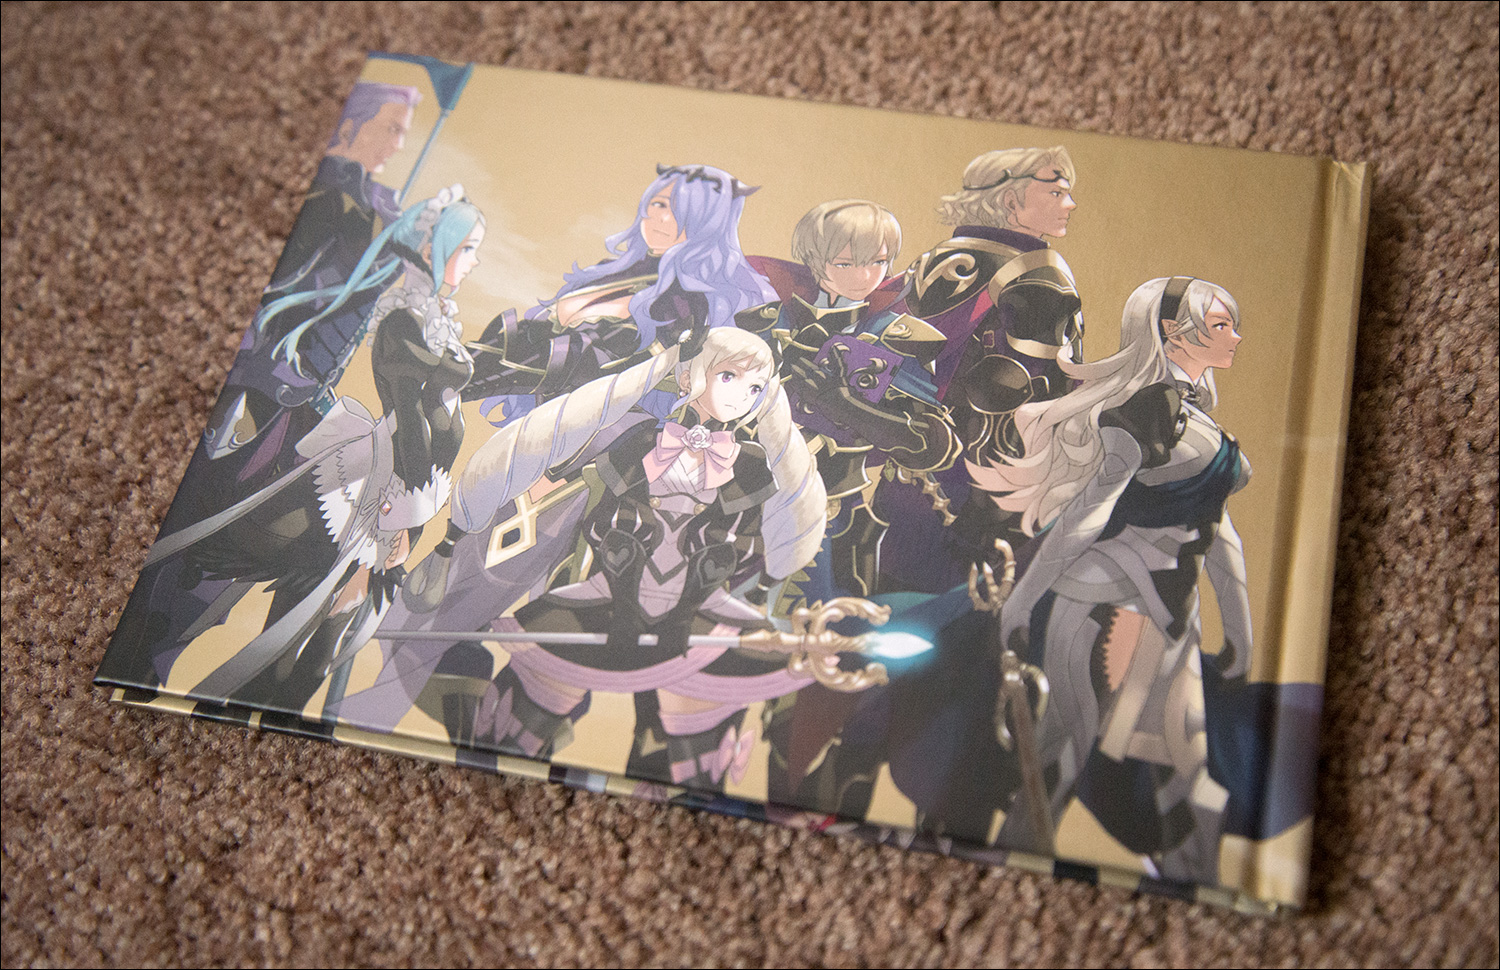 Fire-Emblem-Fates-Special-Edition-Artbook-Back